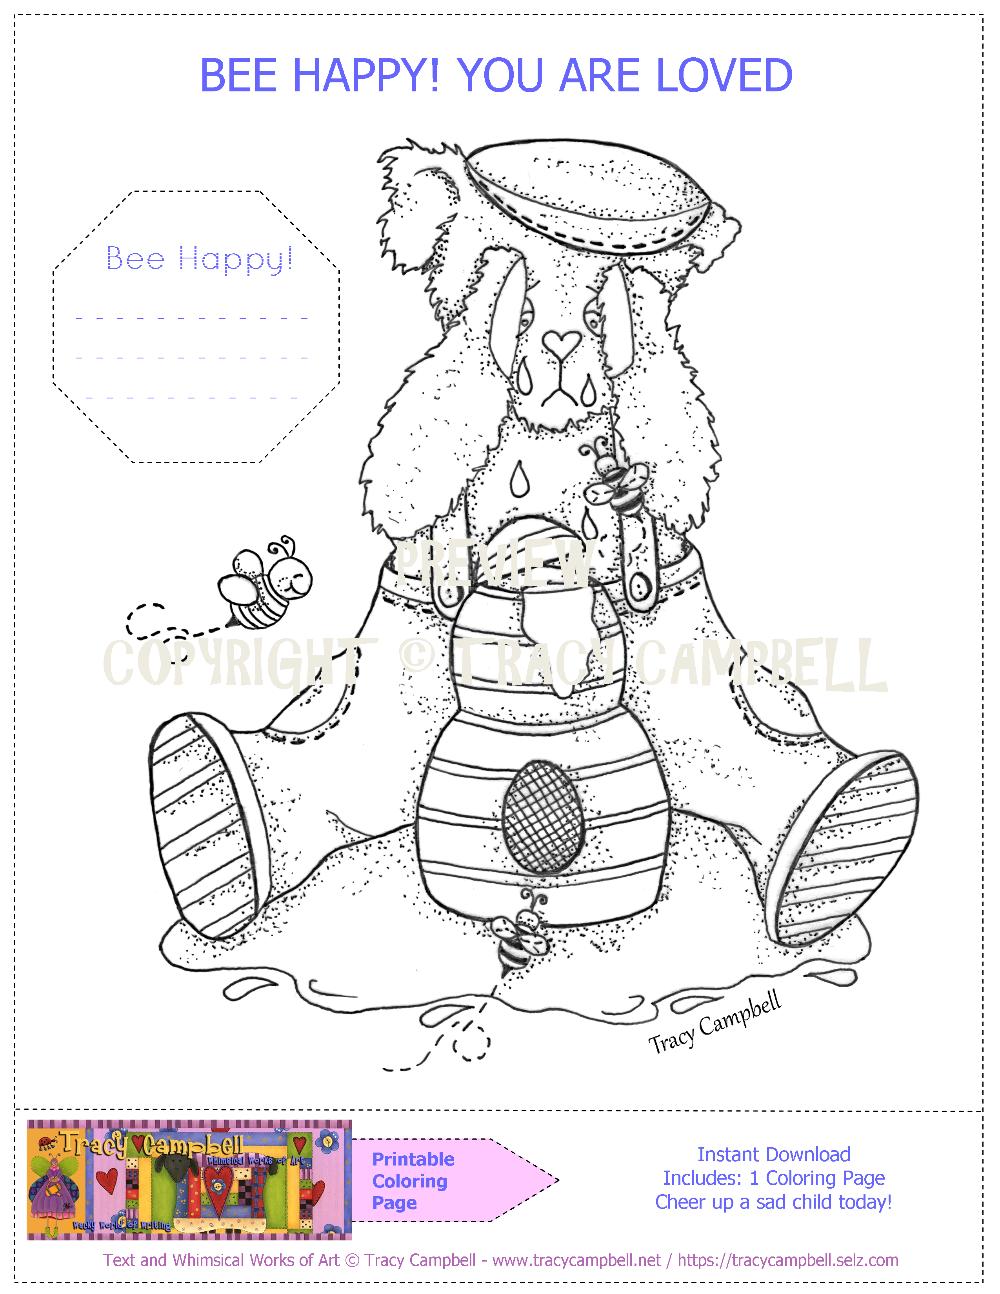 PRINTABLE COLORING PAGE - BEE HAPPY! YOU ARE LOVED